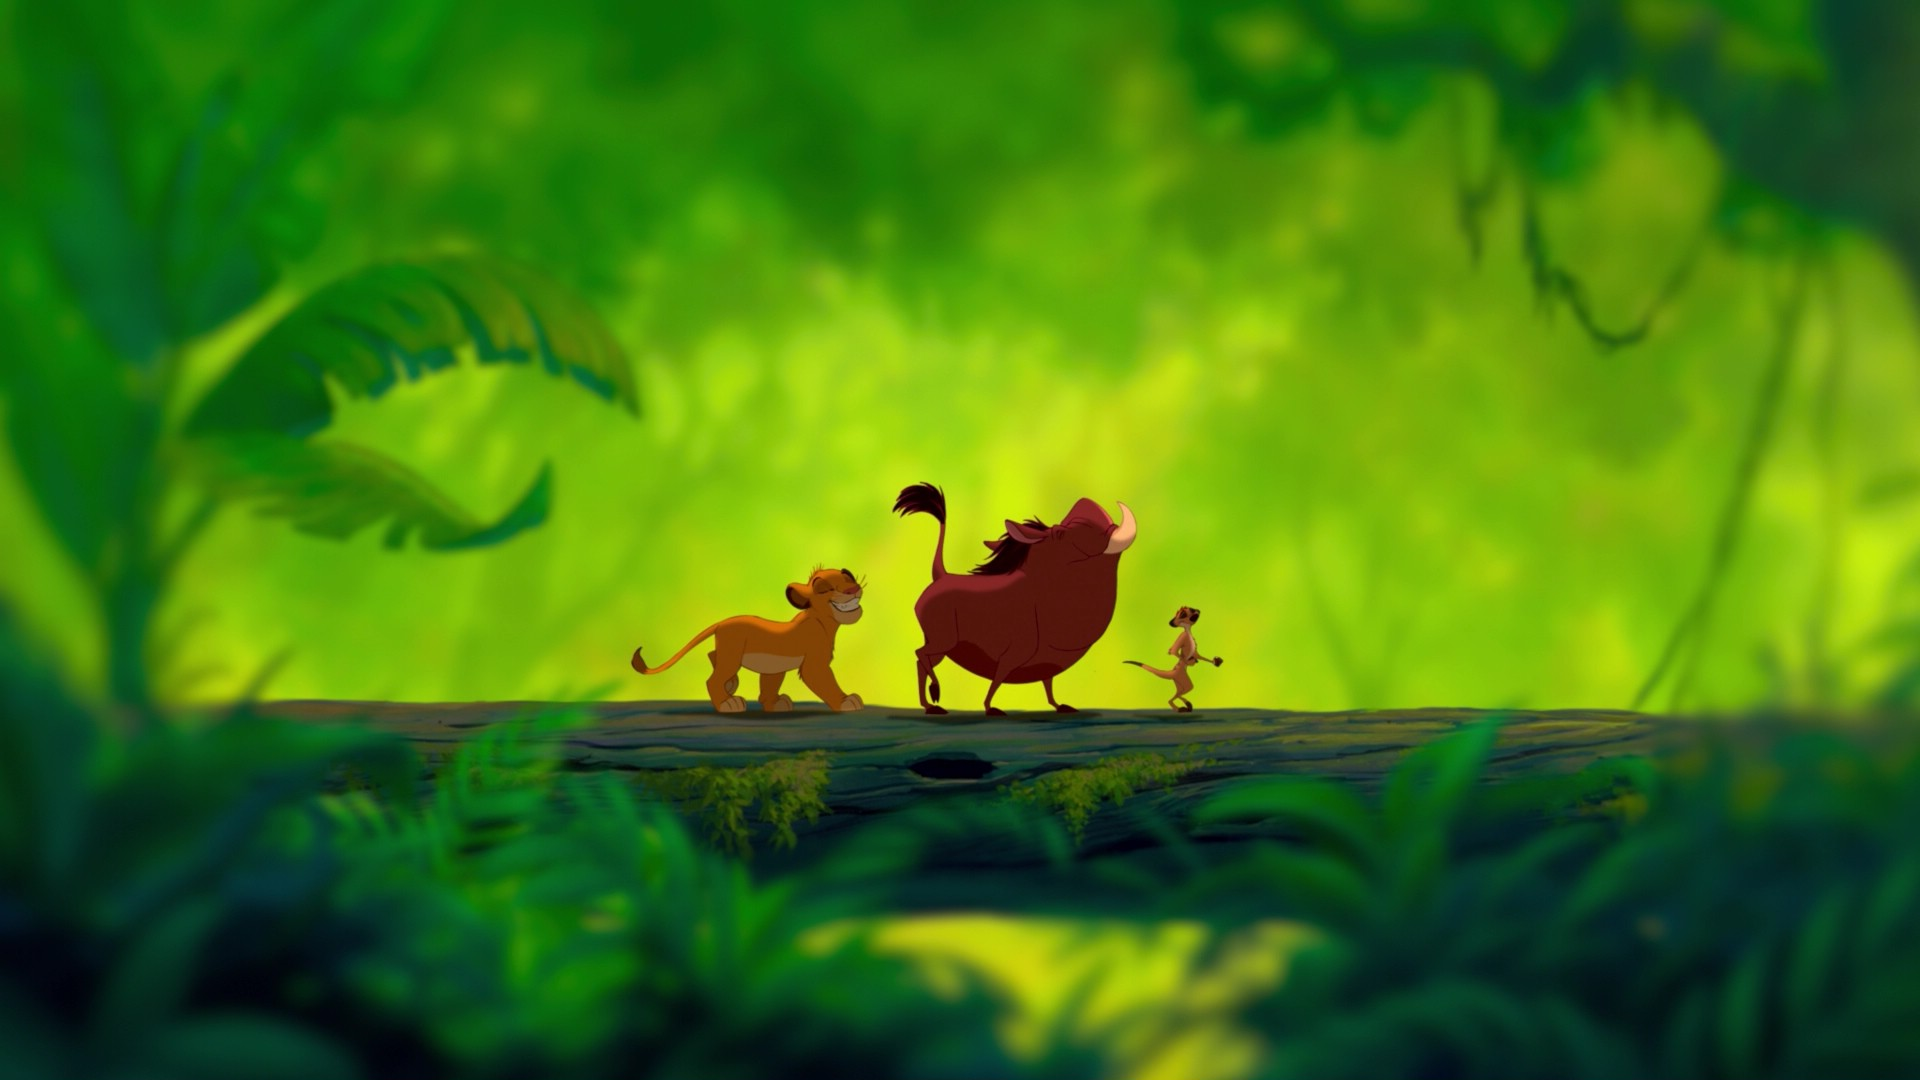 HD Wallpapers Of Lion King